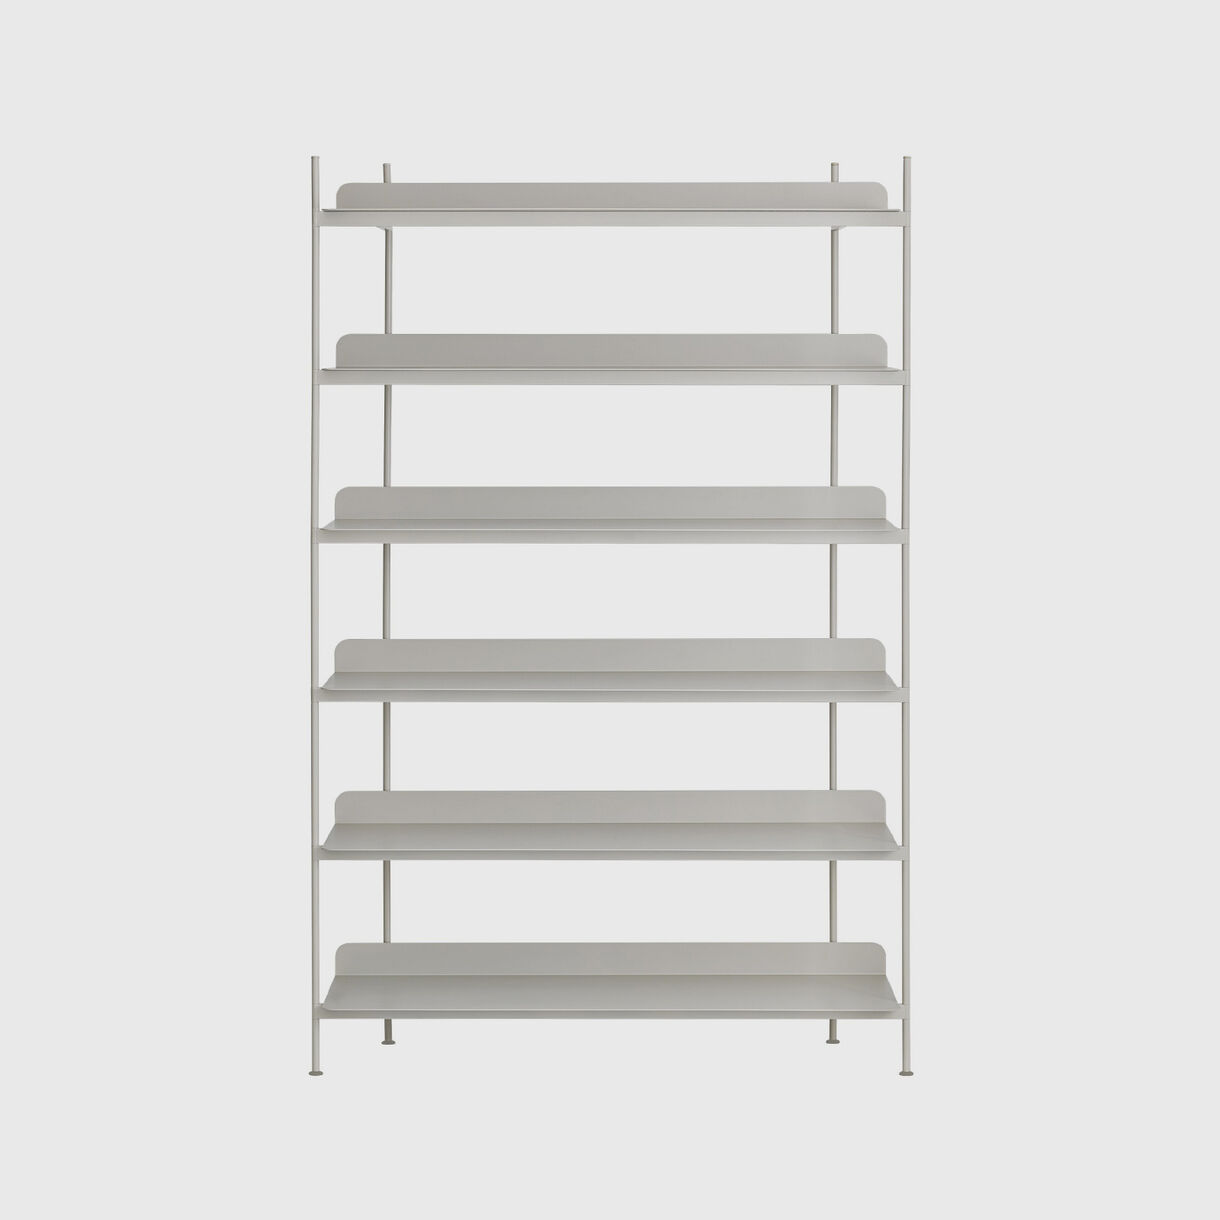 Compile Shelving System, Configuration 4